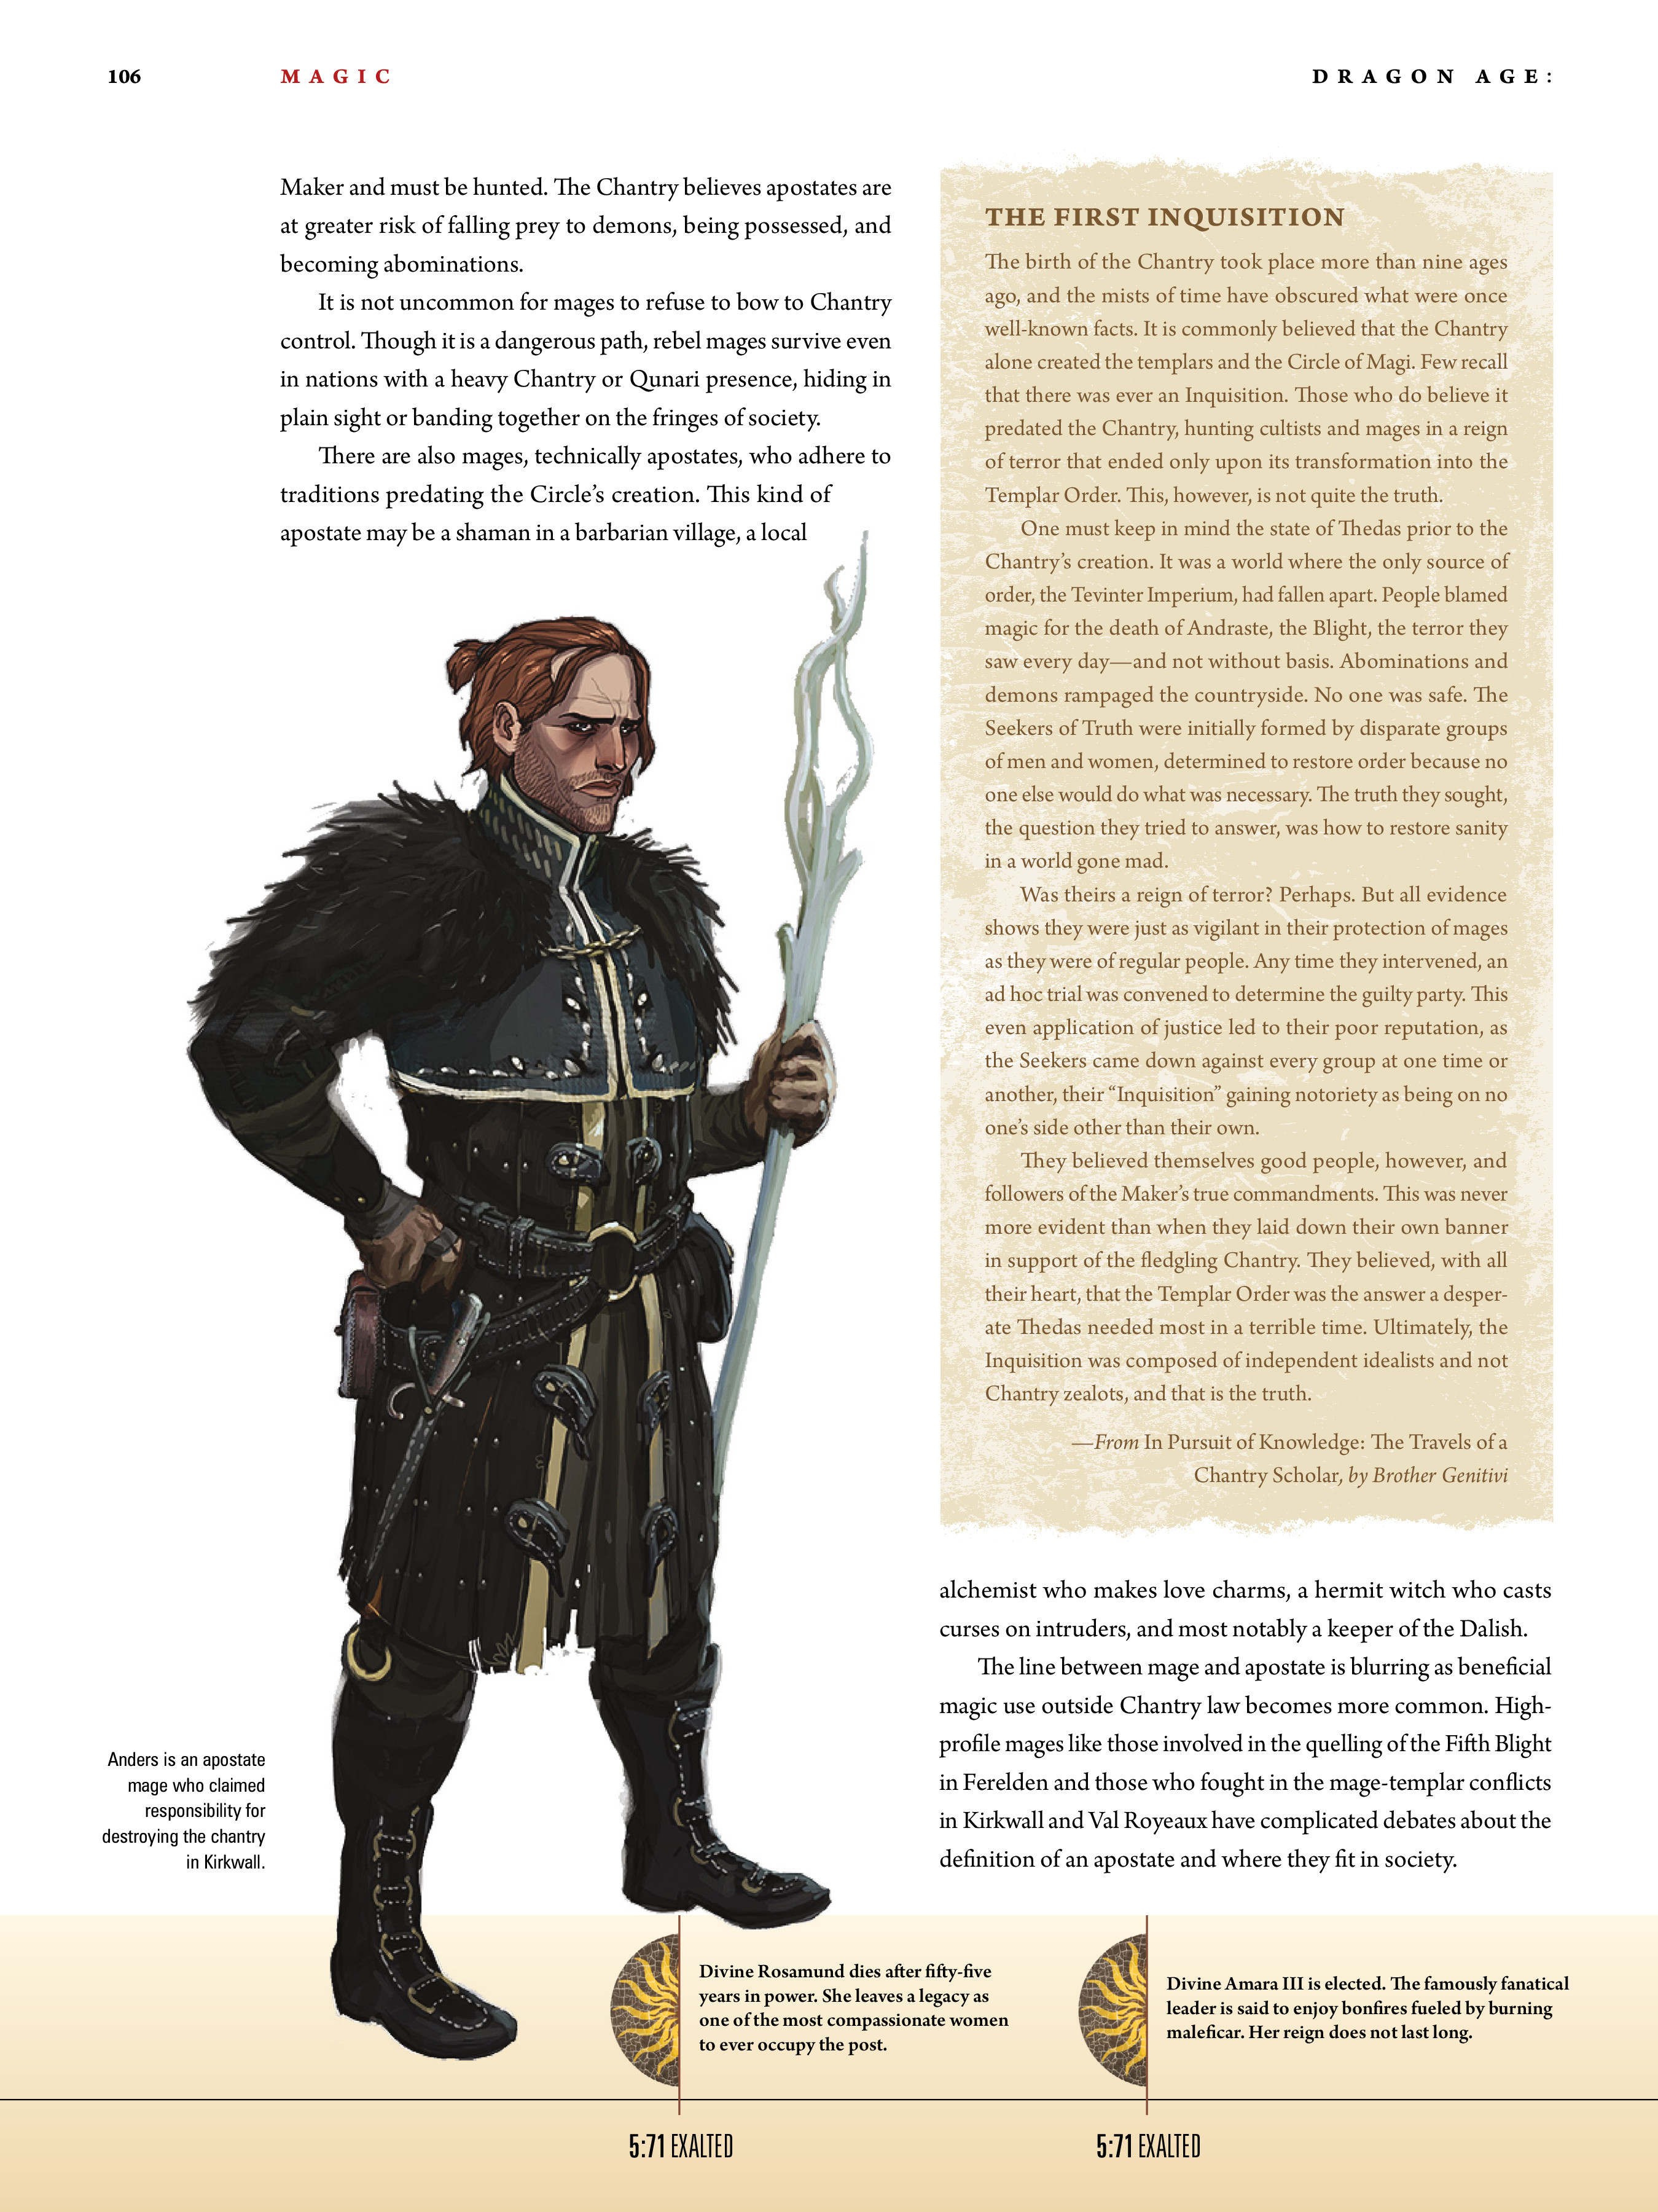 Read online Dragon Age: The World of Thedas comic -  Issue # TPB 1 - 86